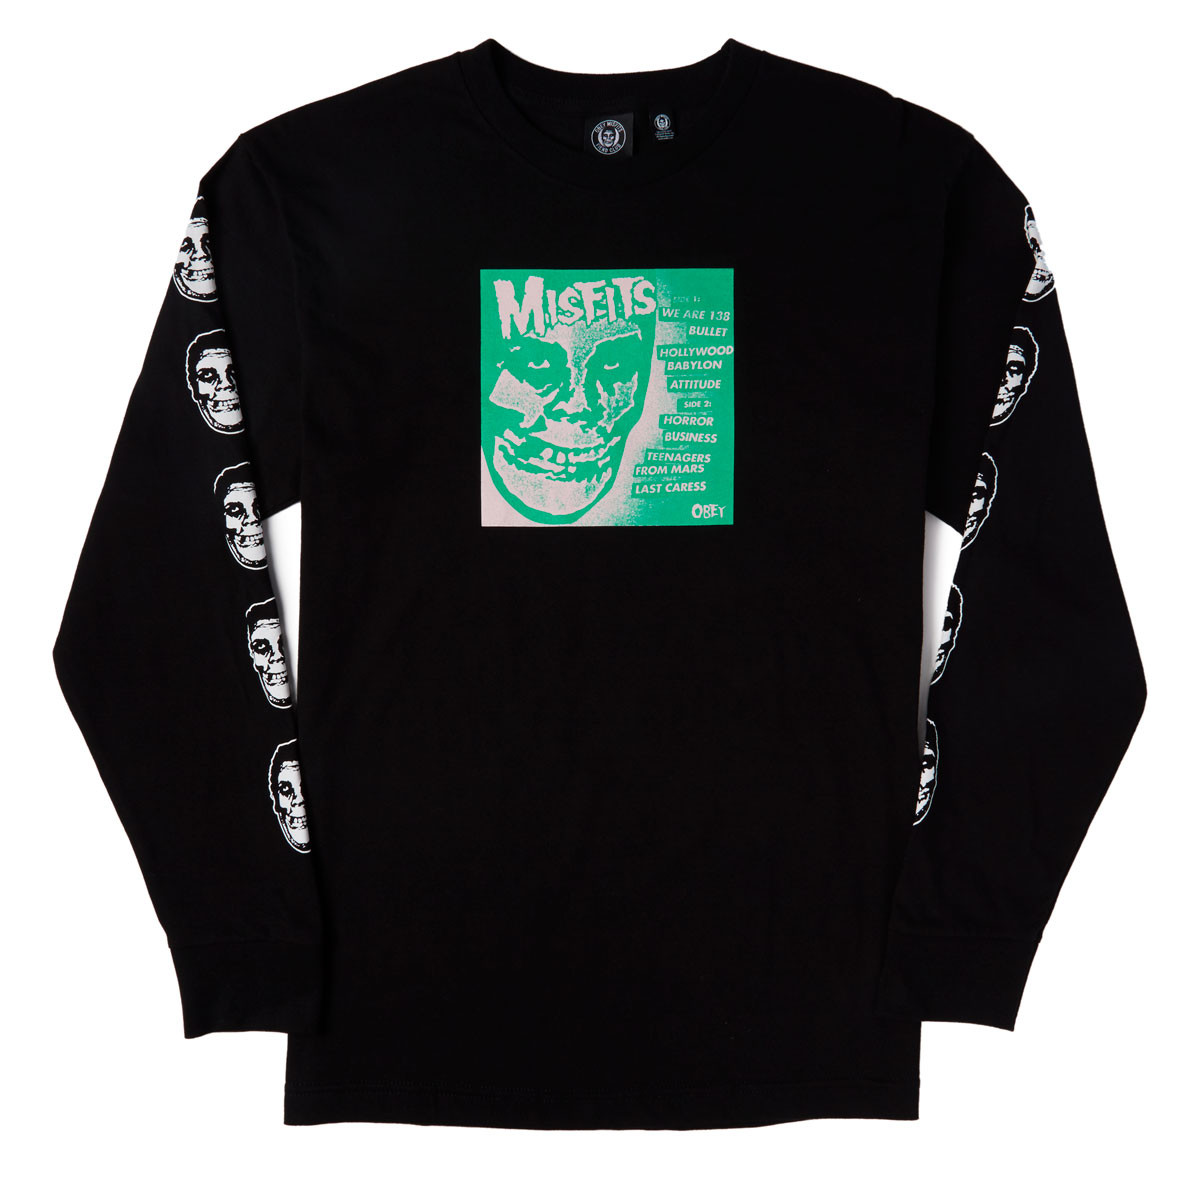 obey x misfits 7in cover long sleeve t shirt black - Misfits Christmas Sweater